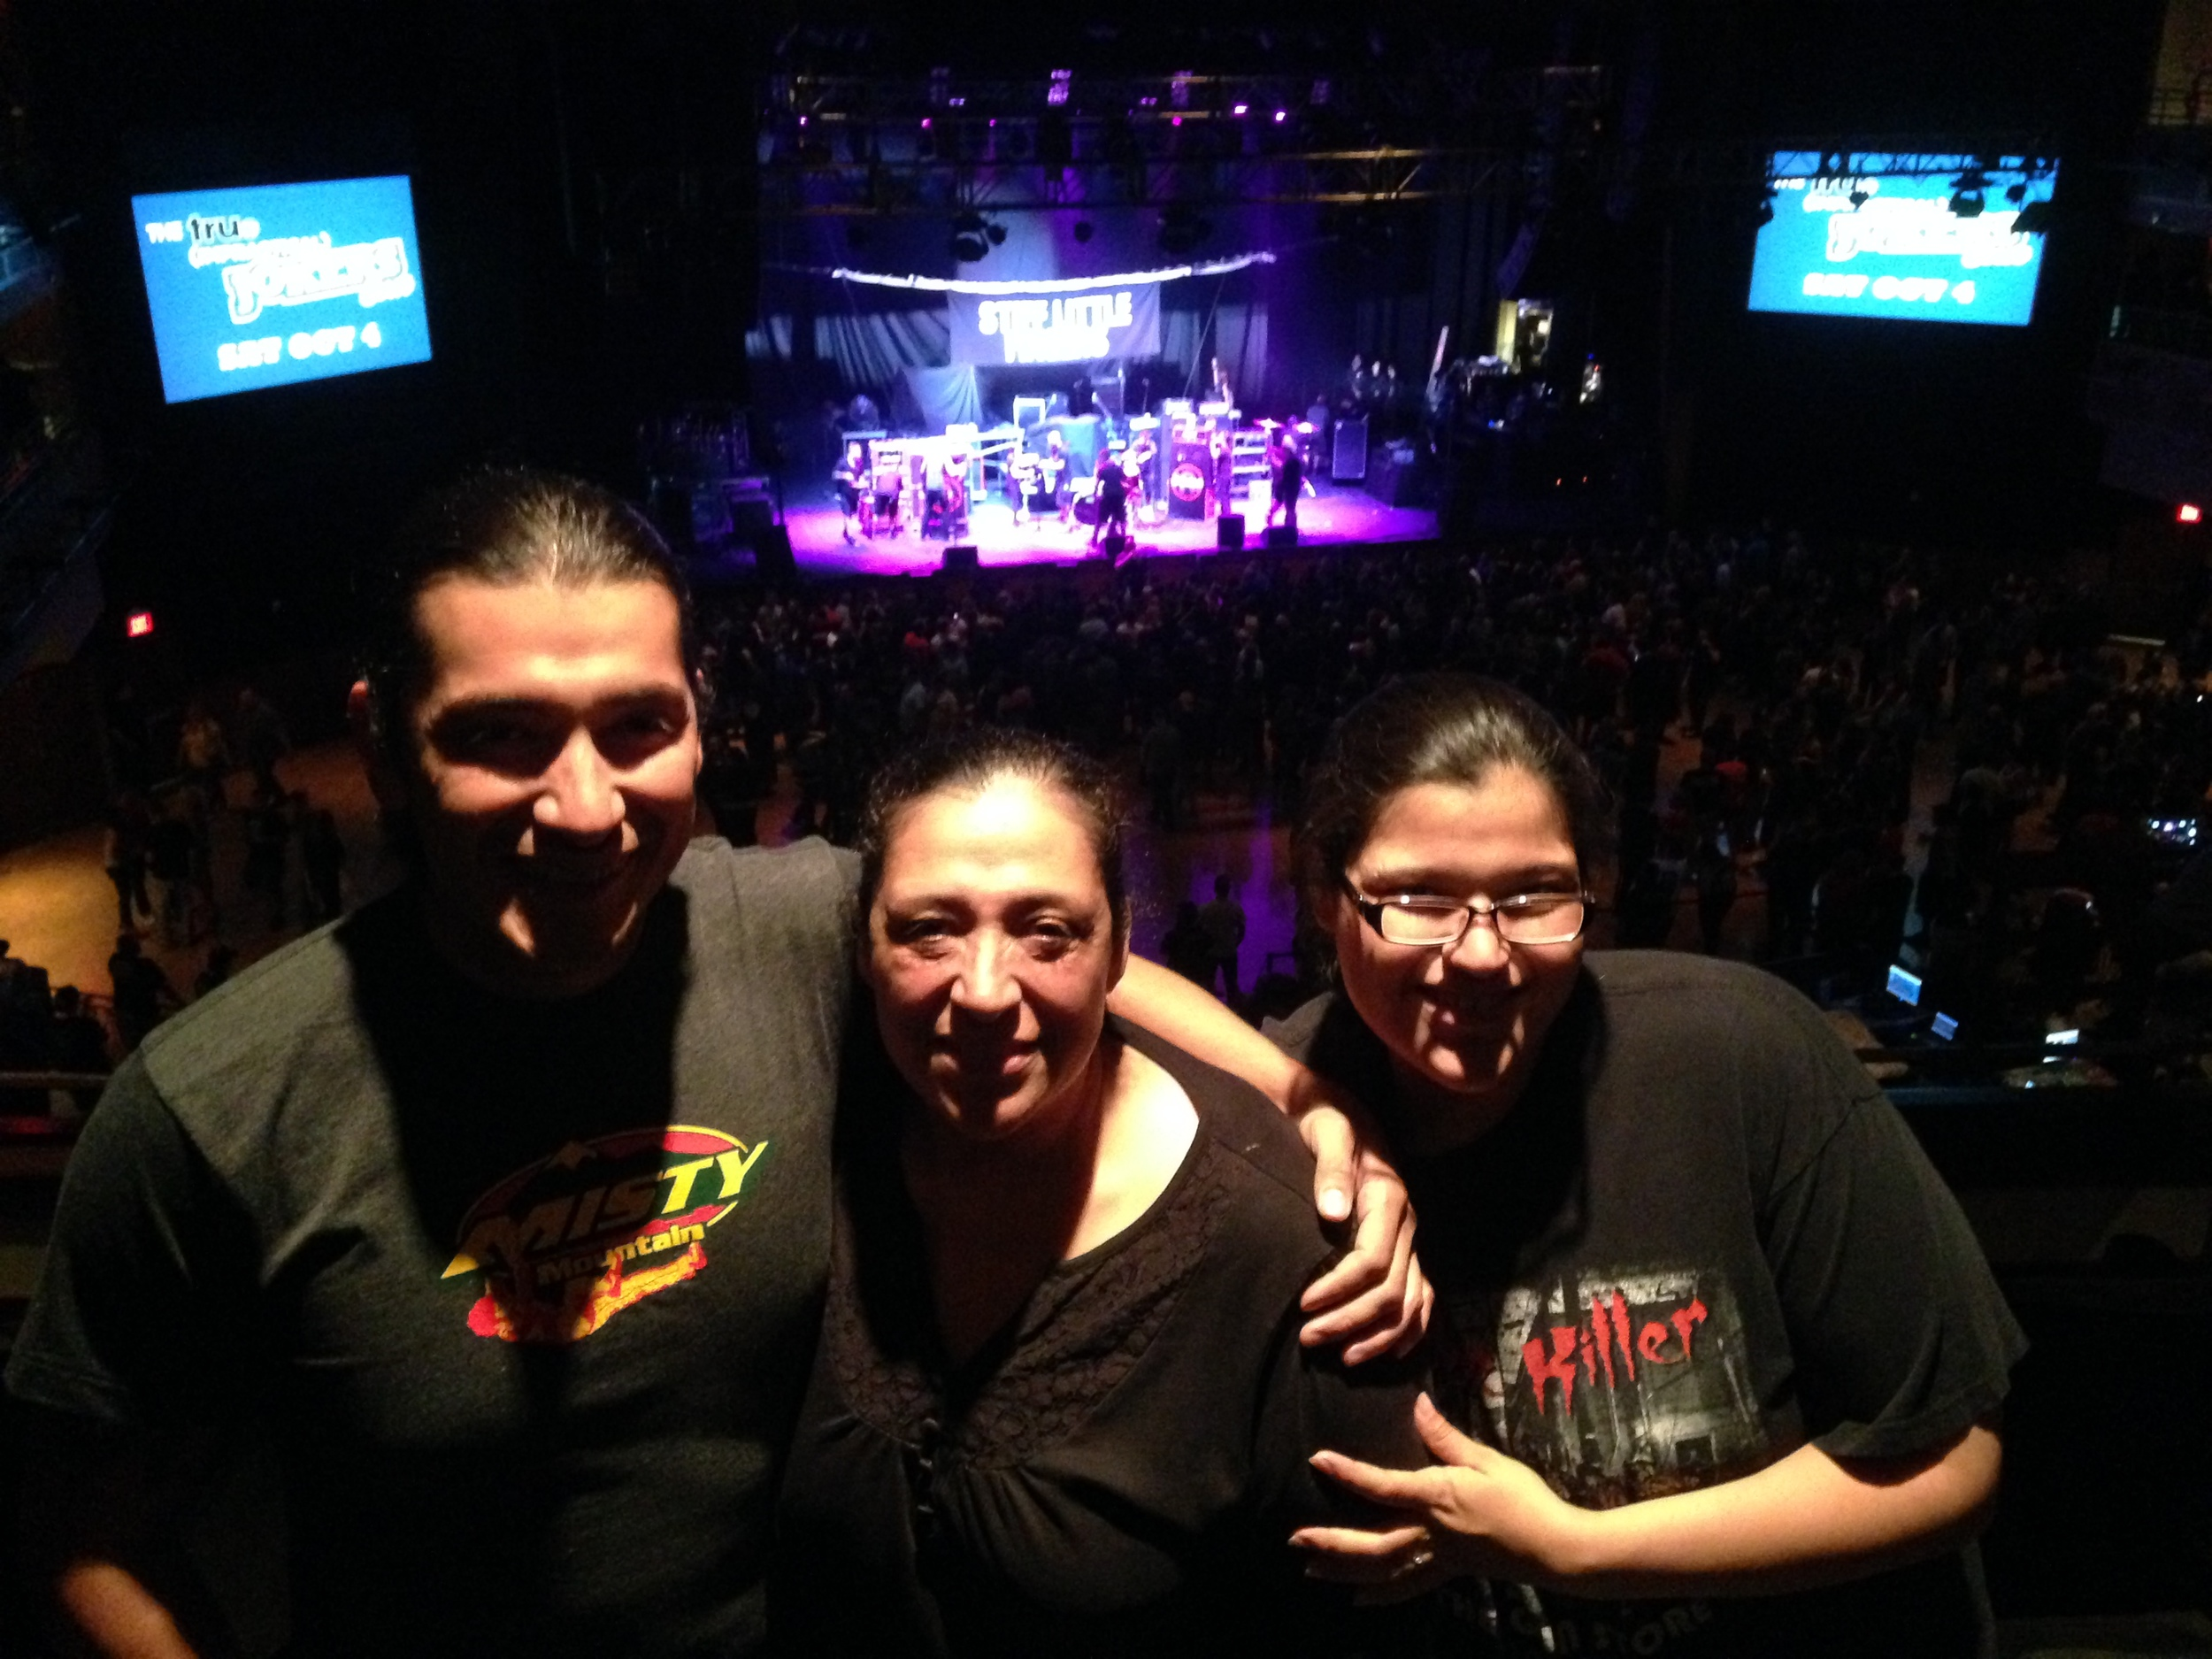 My mom, my sister, and I at The Joint inside The HardRock Hotel waiting to see The Offspring